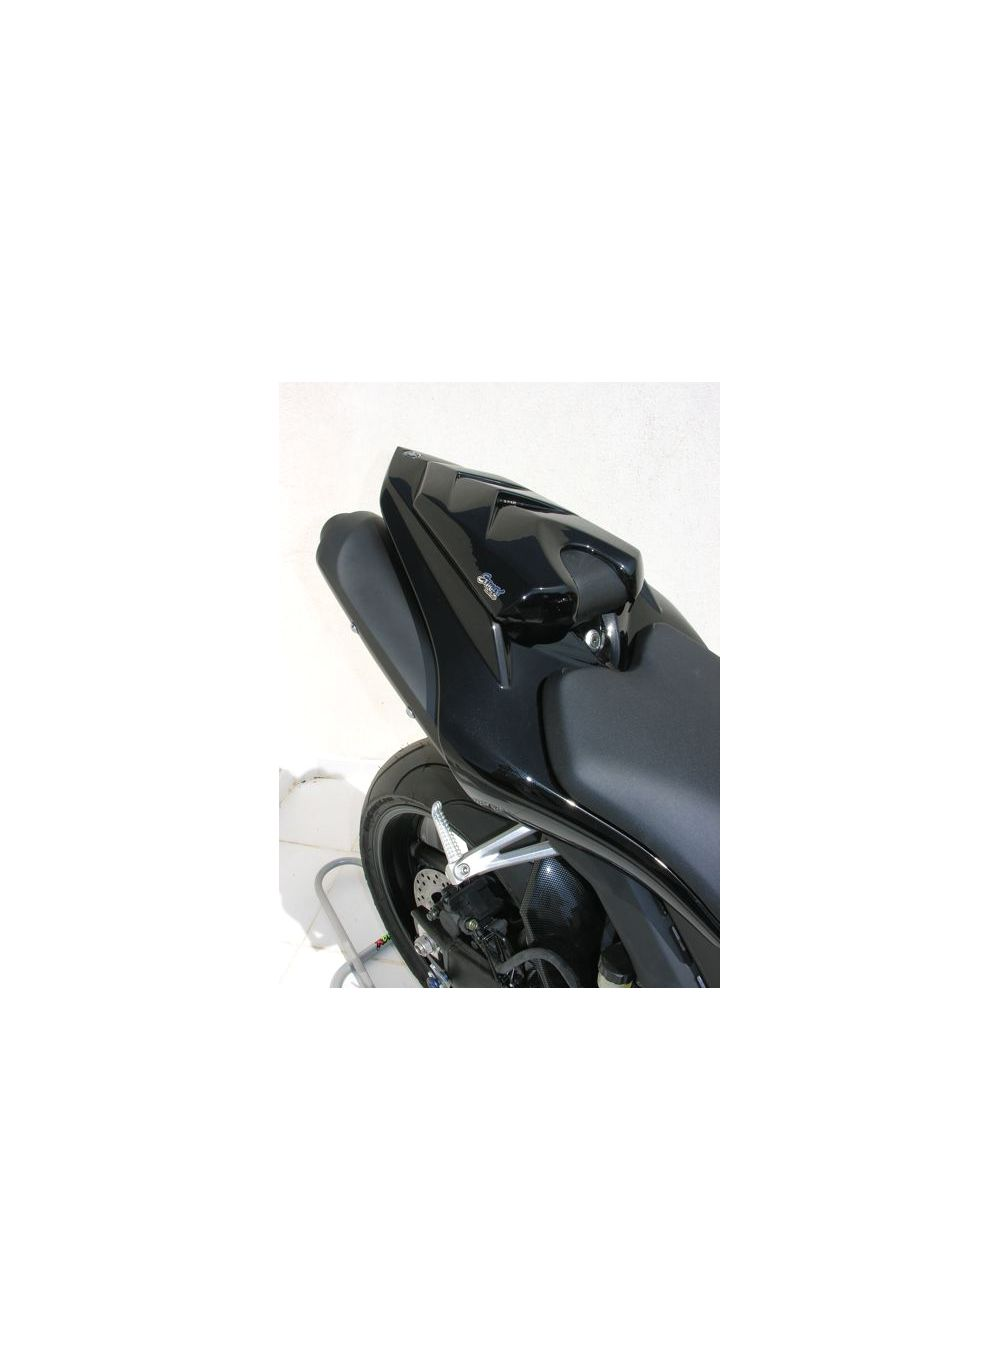 Astonishing Ermax Seat Cover Seat Cowl Yamaha R1 2007 2008 Gg Shop Gamerscity Chair Design For Home Gamerscityorg